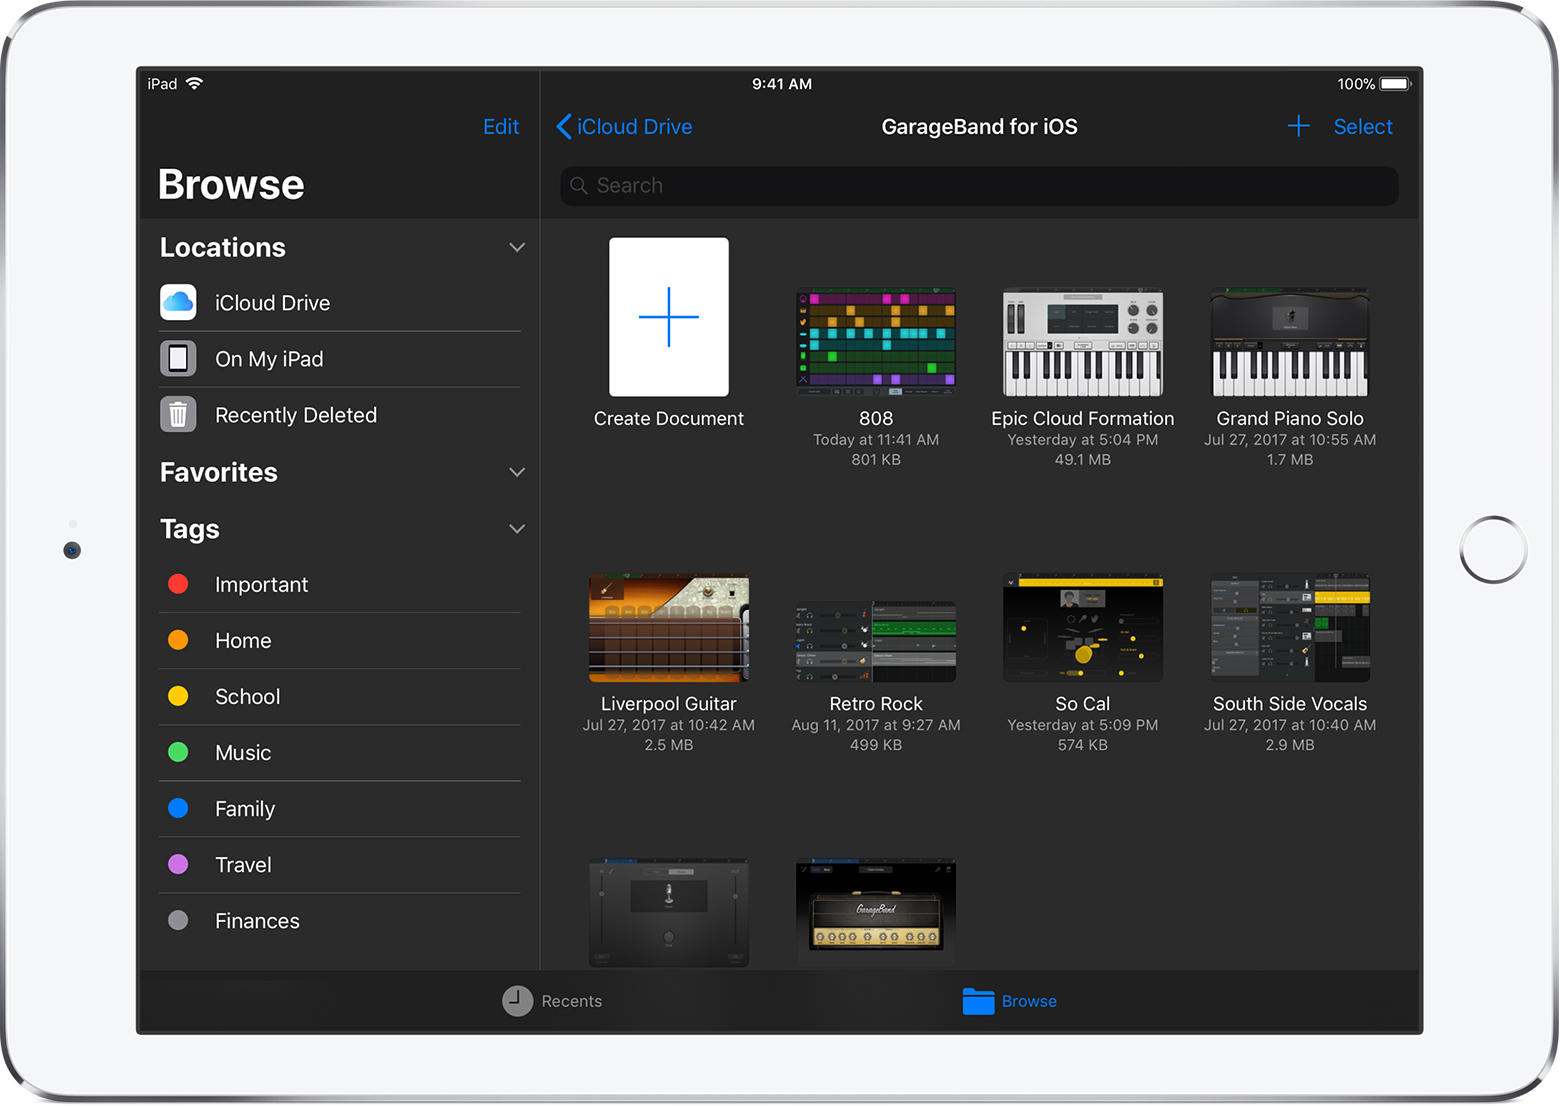 Browse Your Garageband For Ios Songs Apple Support